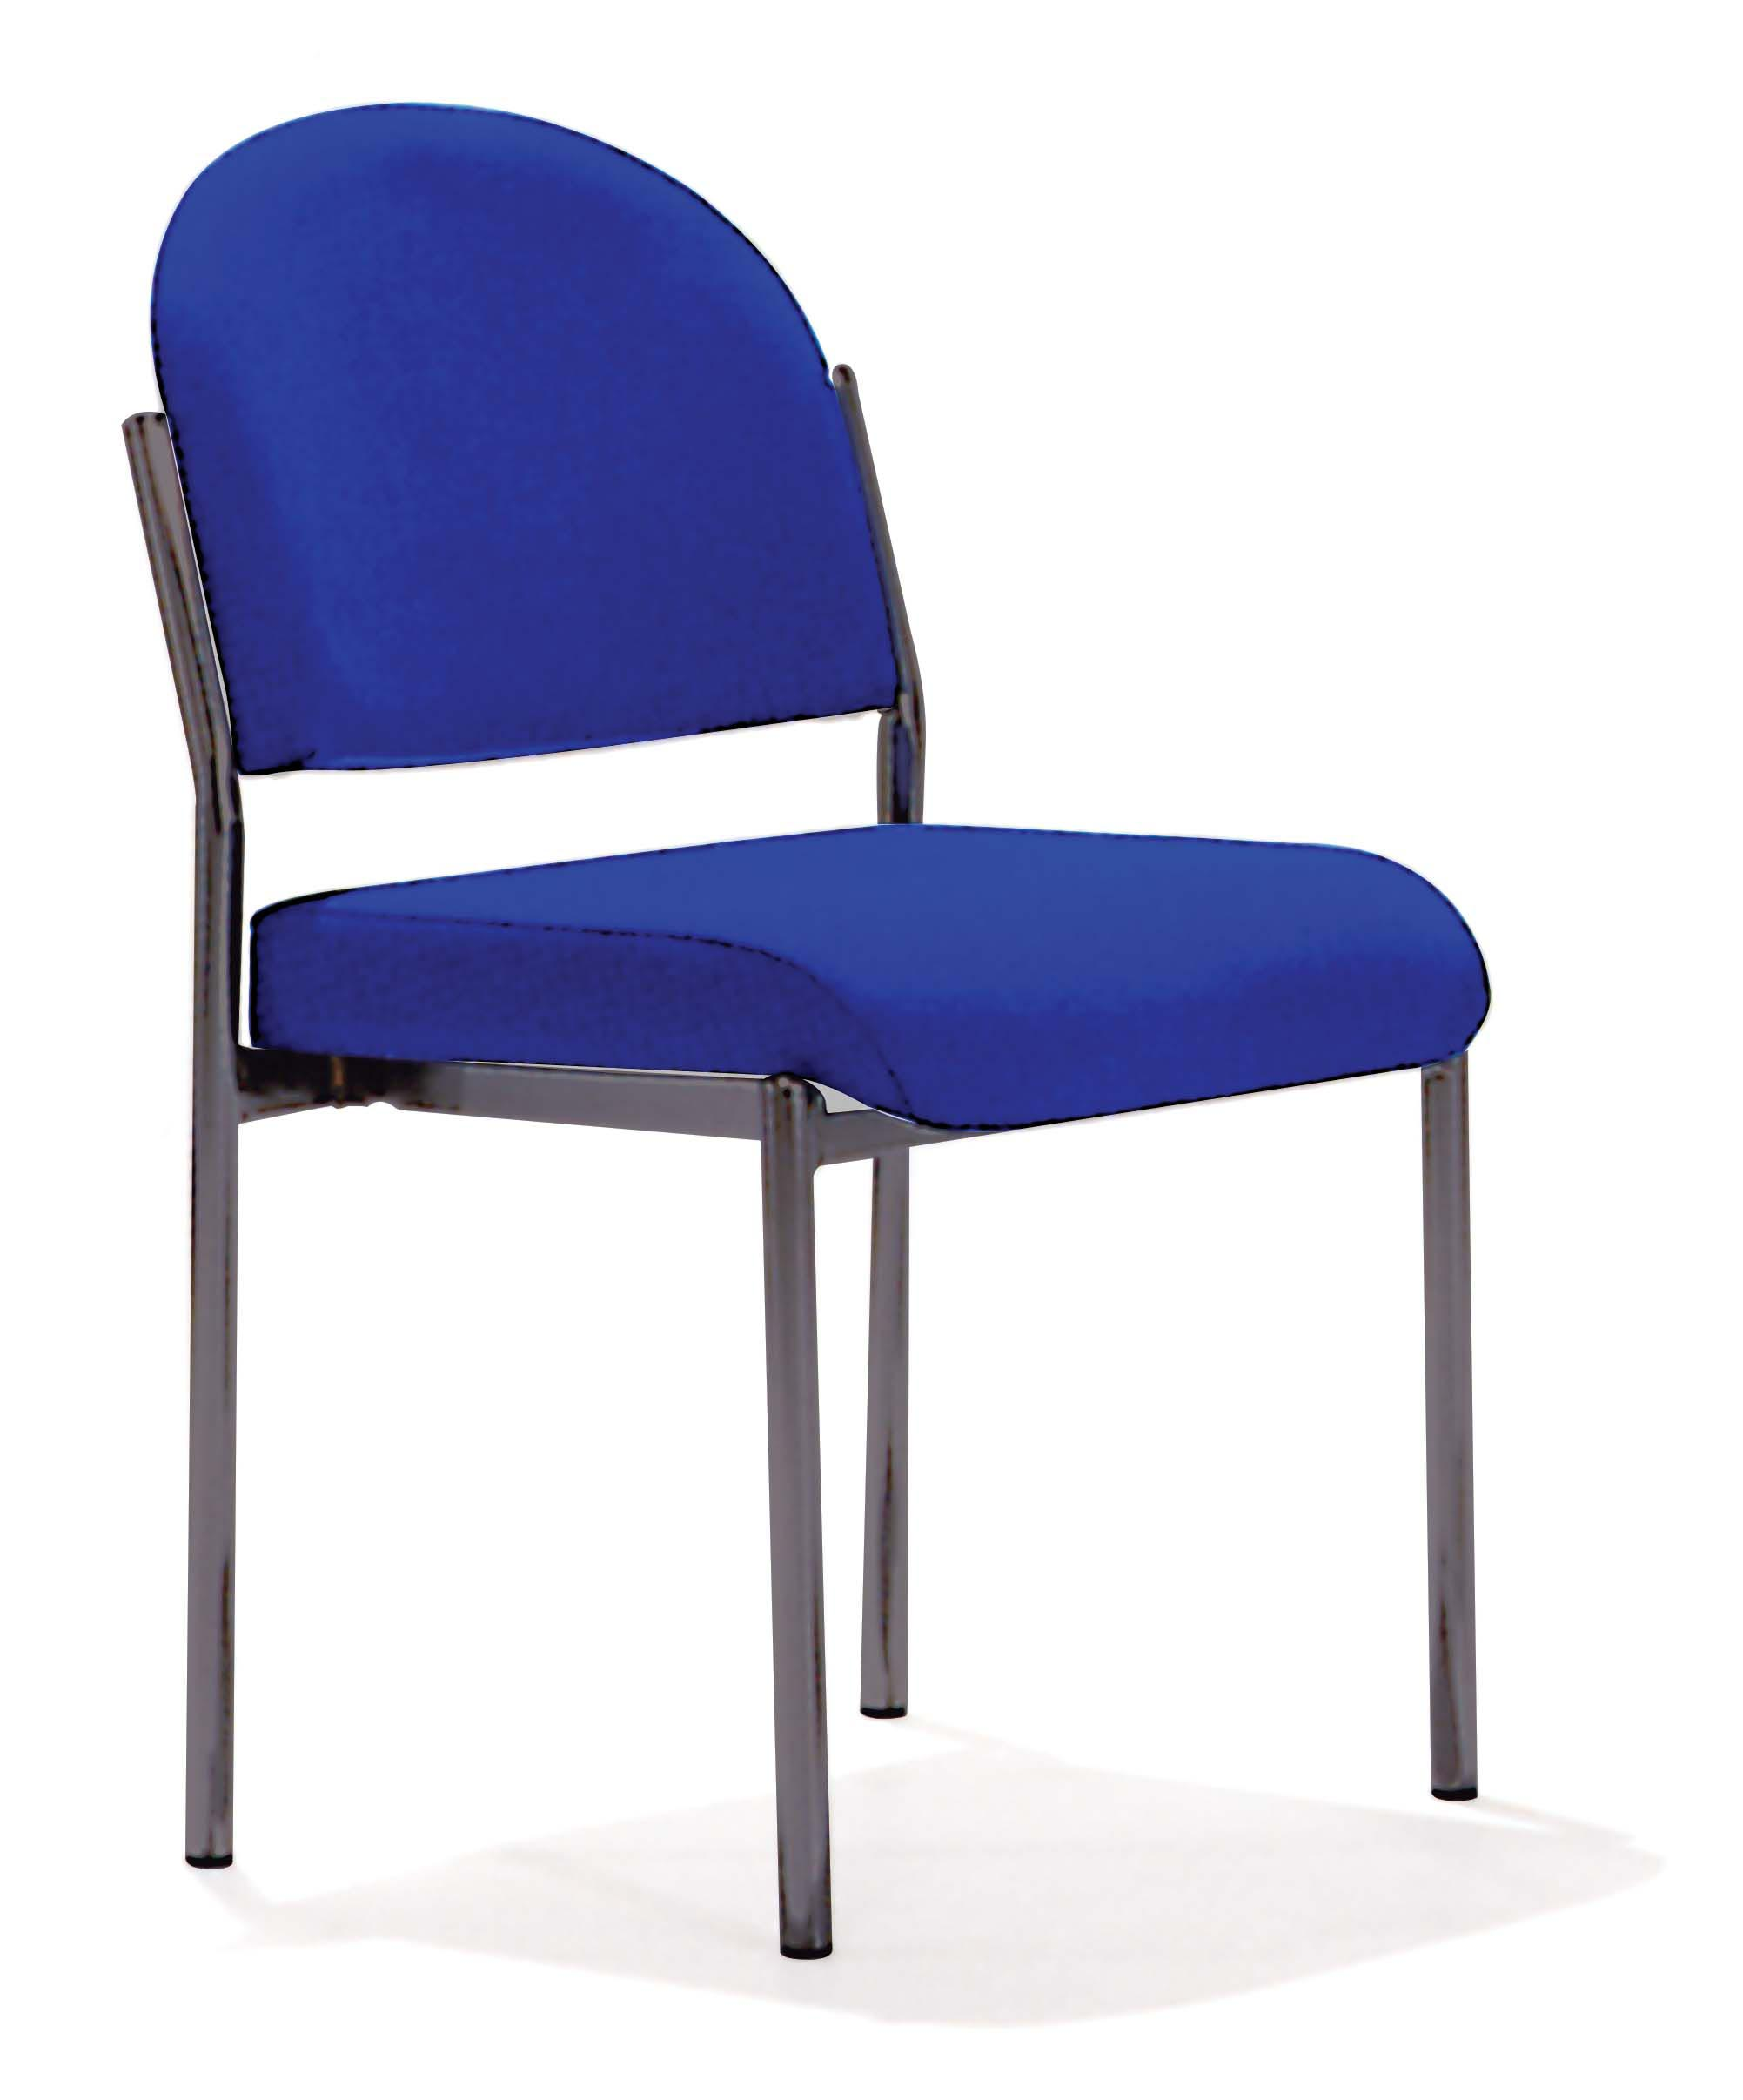 Heavy Duty Visitor Chairs Richardsons Office Furniture  : Heavy Duty Chairs 7 from www.richardsonsoffice.co.uk size 2003 x 2413 jpeg 153kB